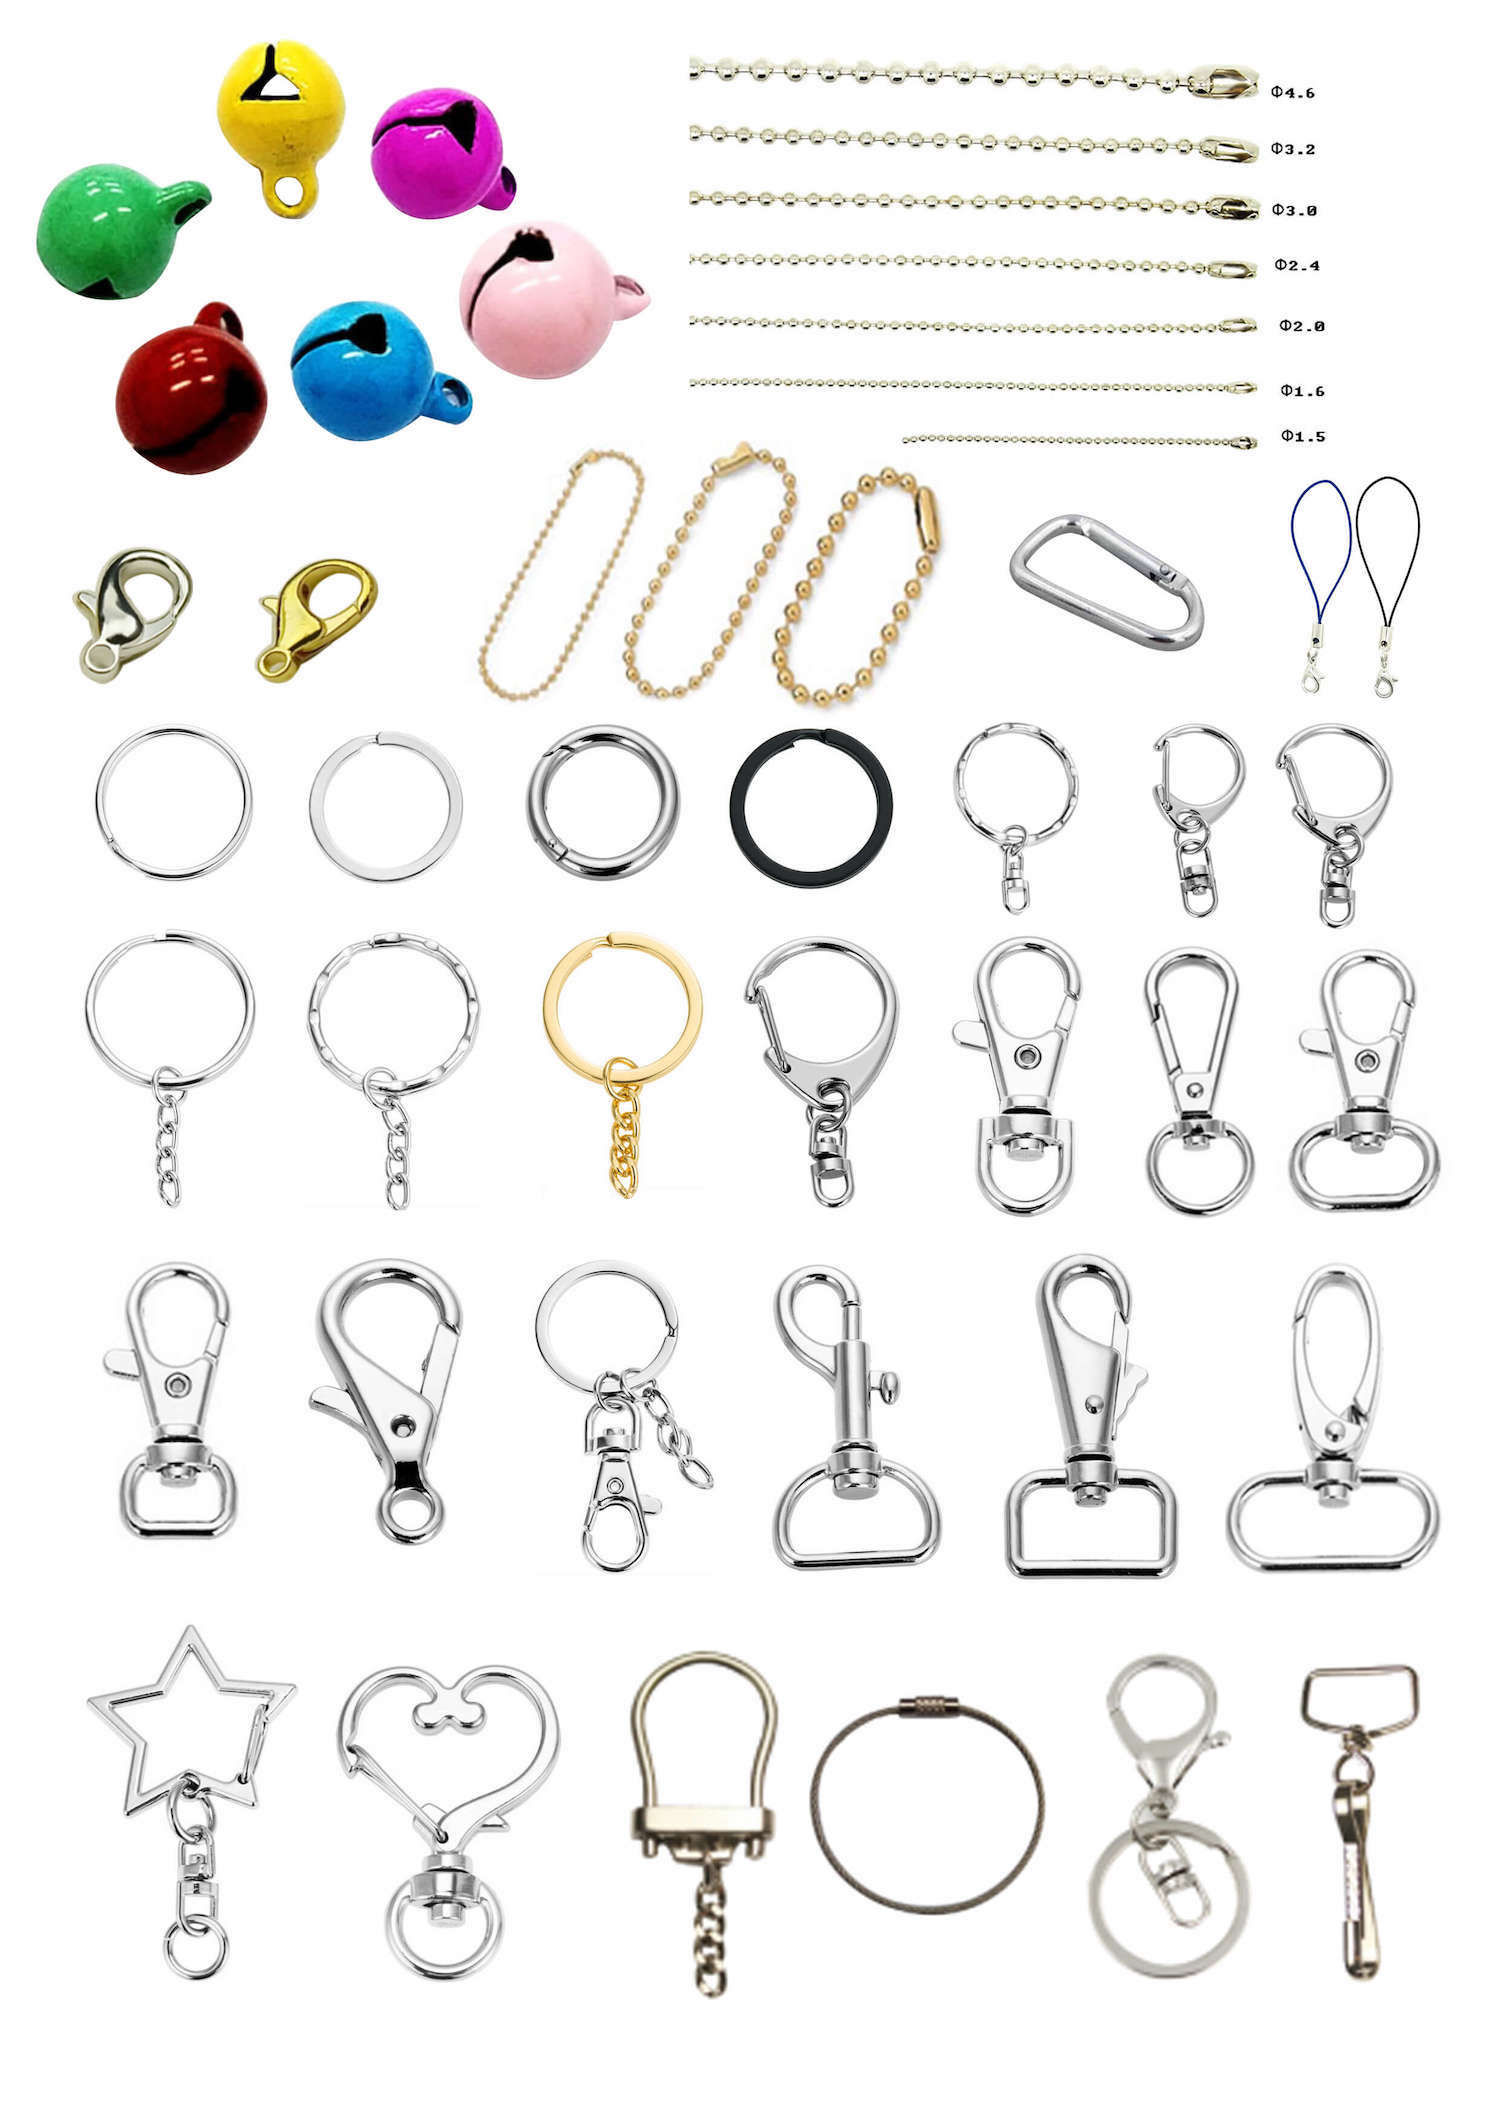 keychain attachments